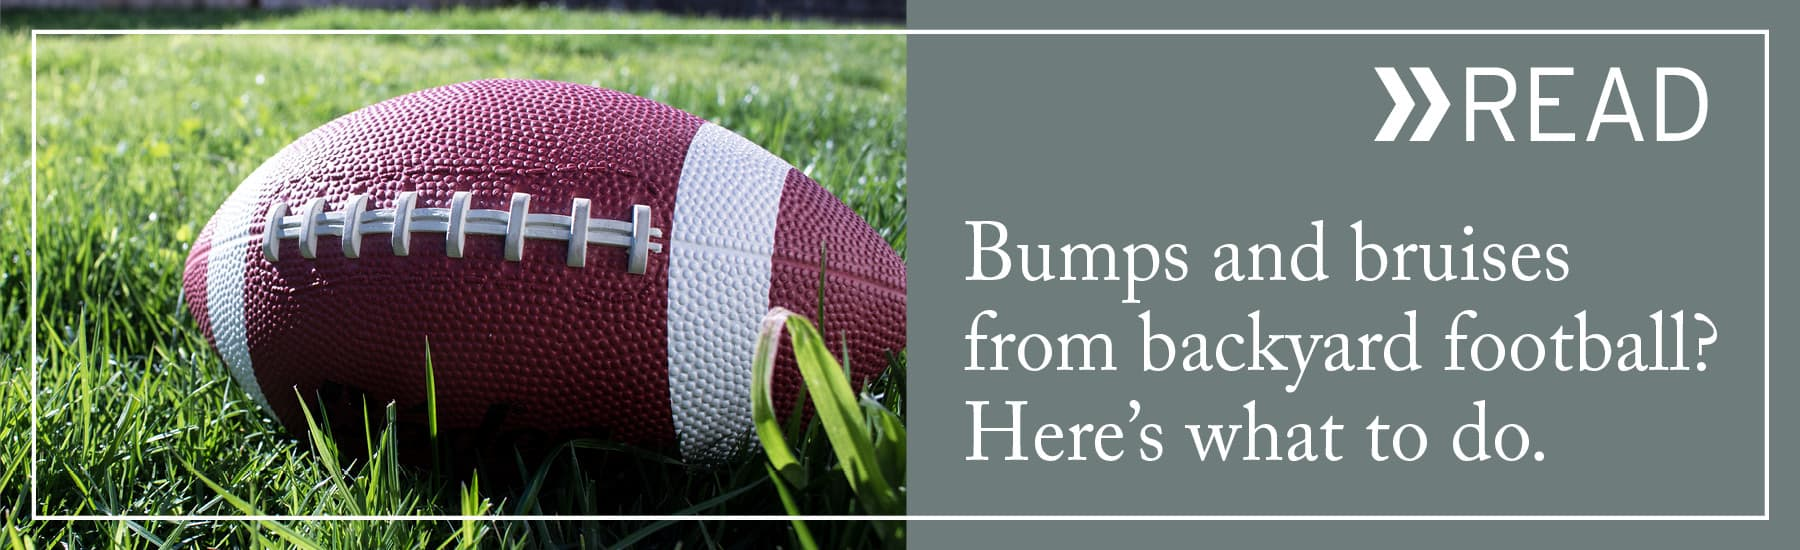 READ: Bumps and bruises from backyard football? Here's what to do.